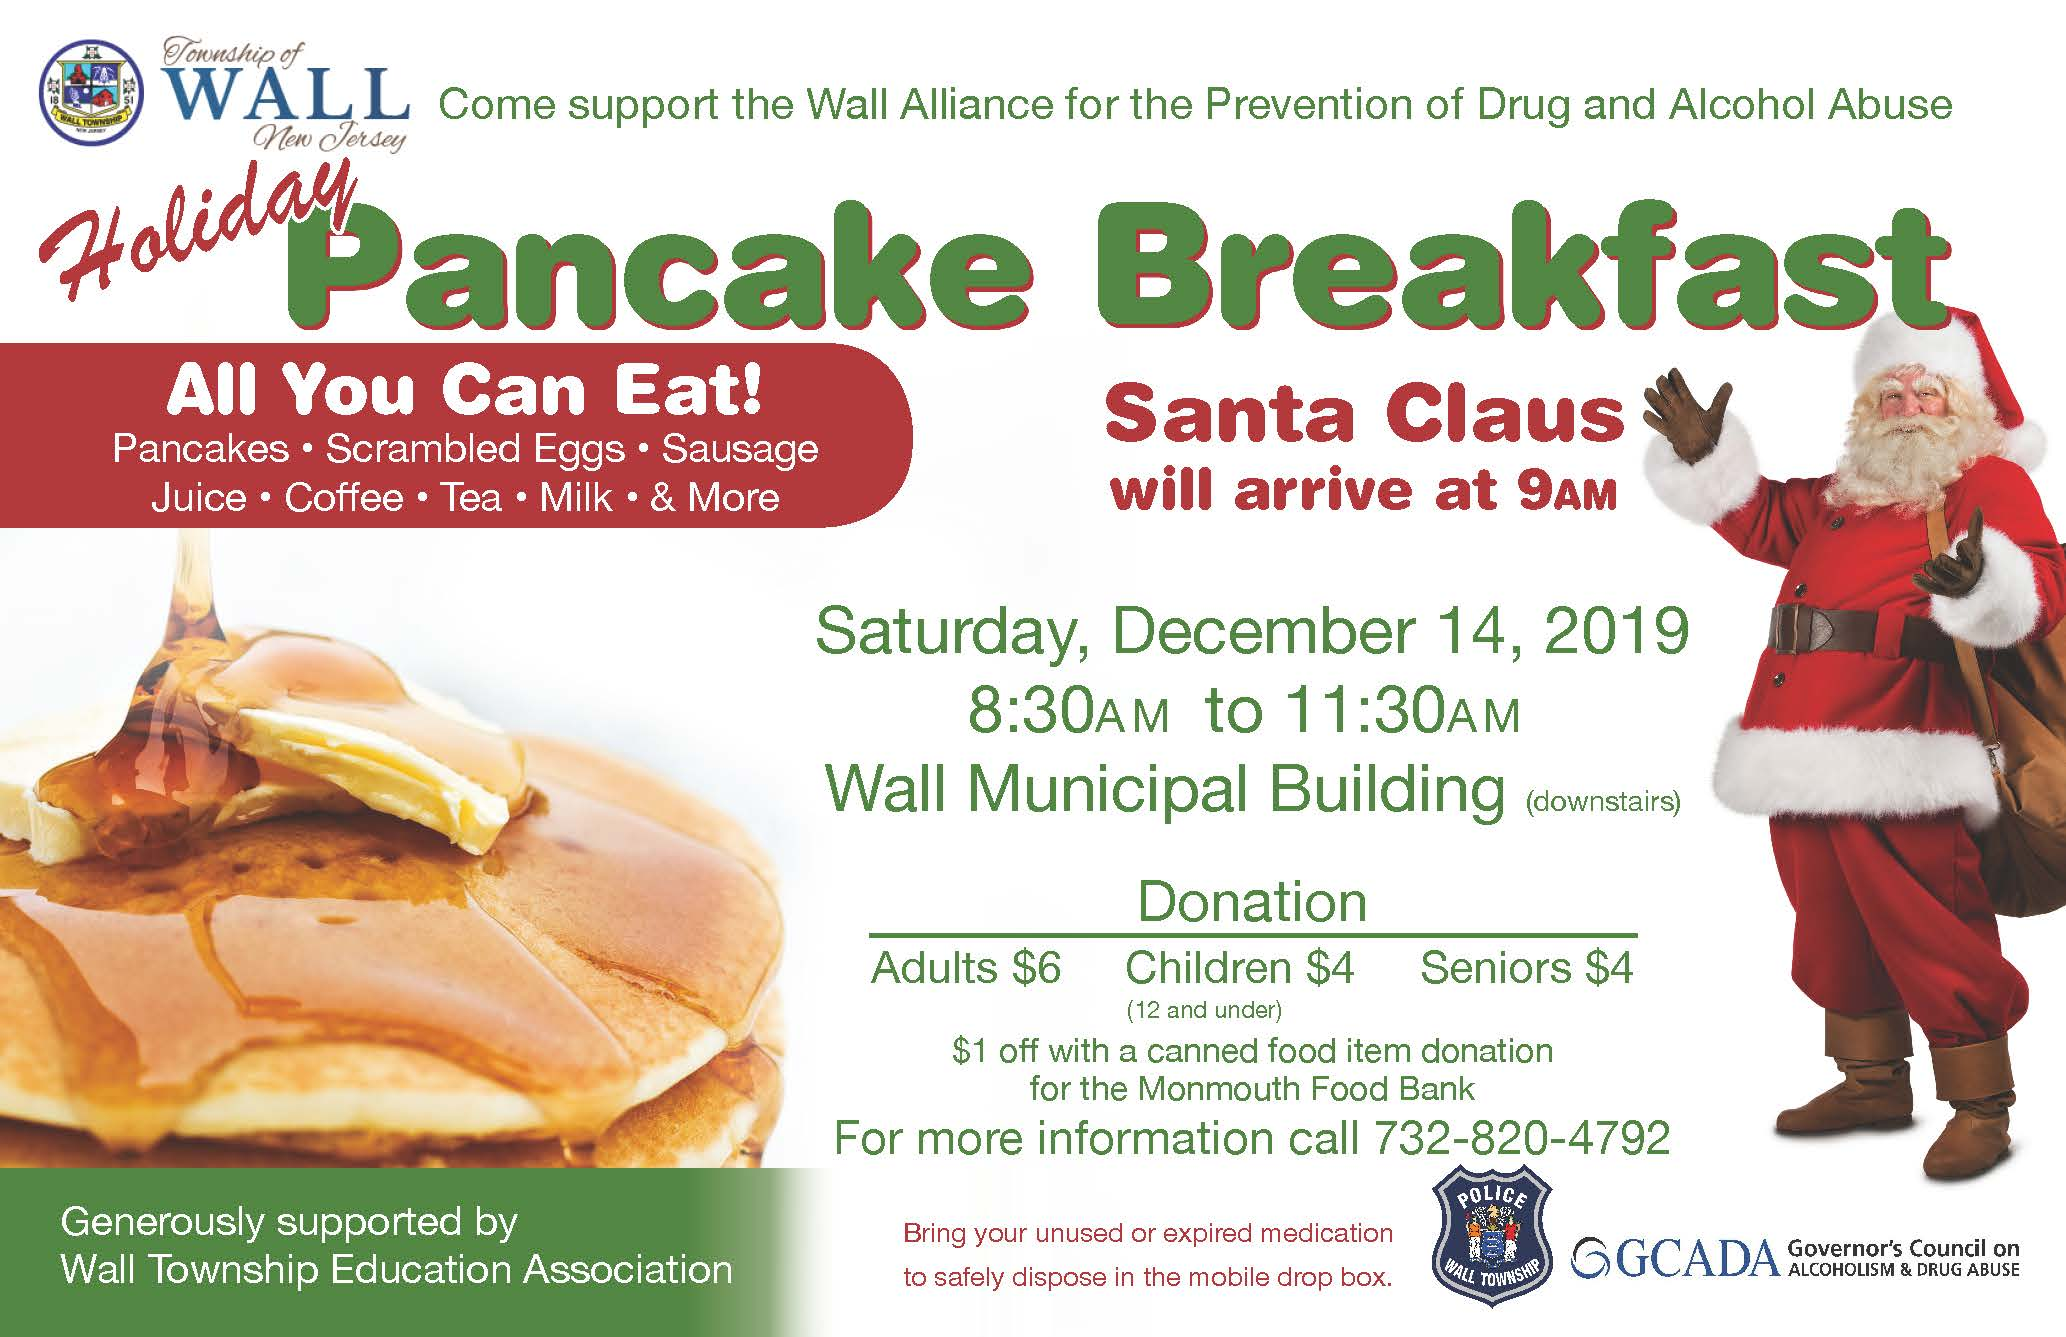 Wall Alliance Pancake Breakfast Christmas 2019_REVISED